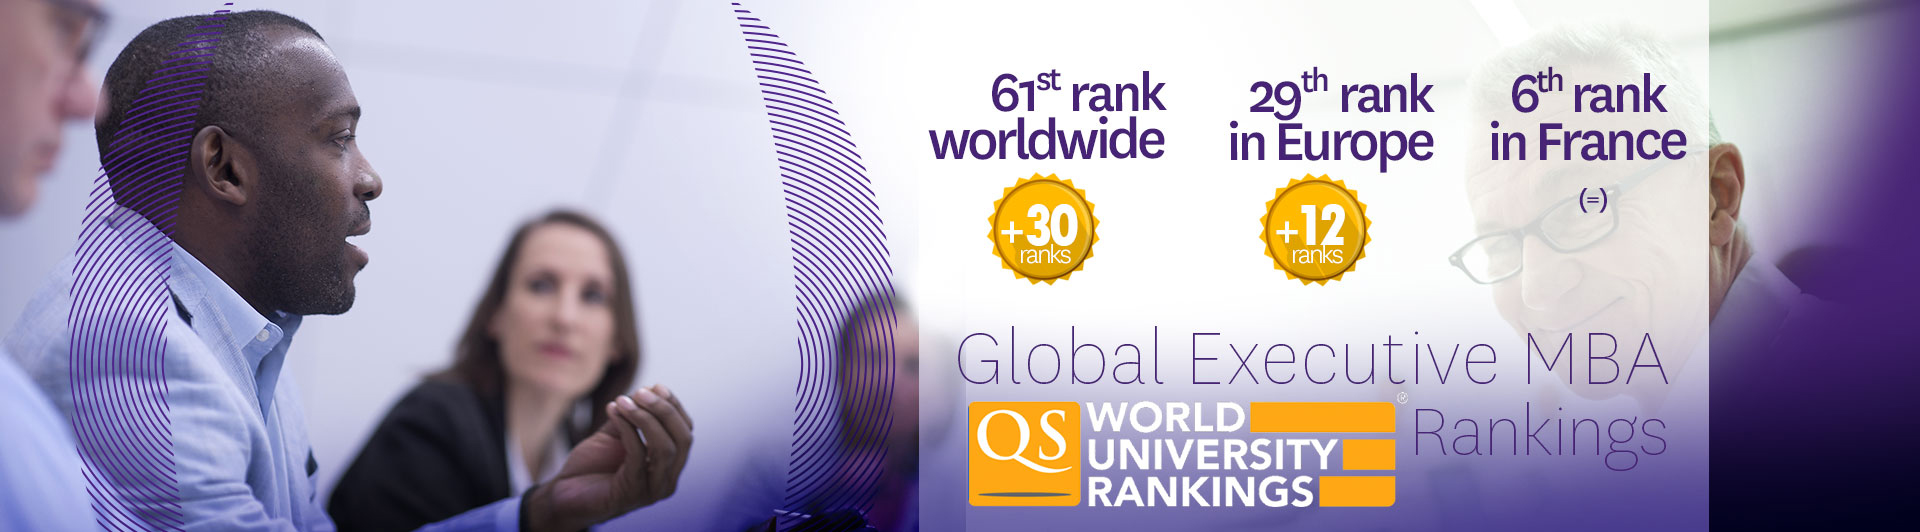 NEOMA Business School placed 61st in the QS 2020 worldwide ranking of top Executive MBAs